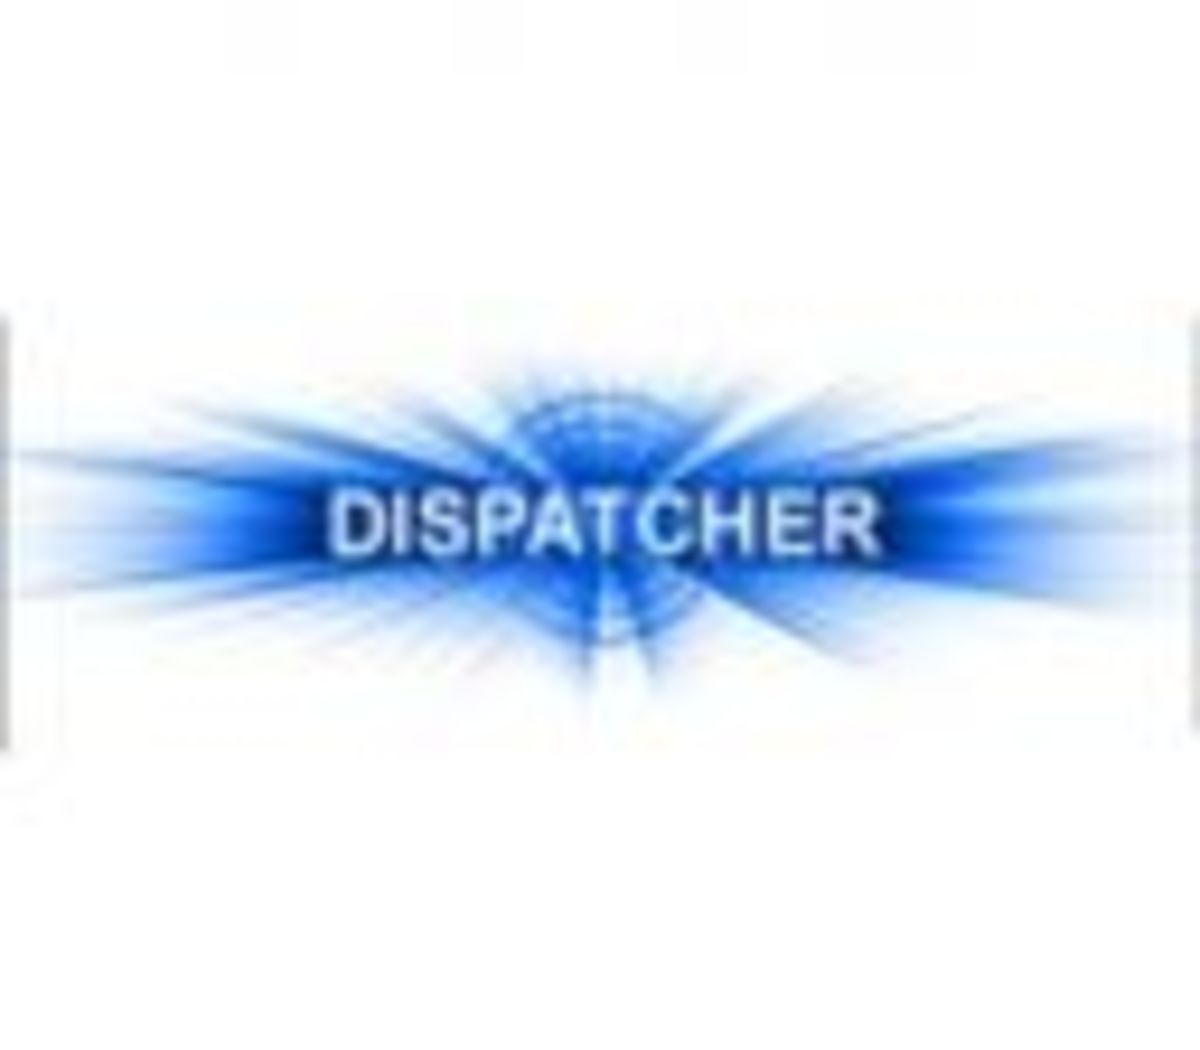 dispatcherpoems